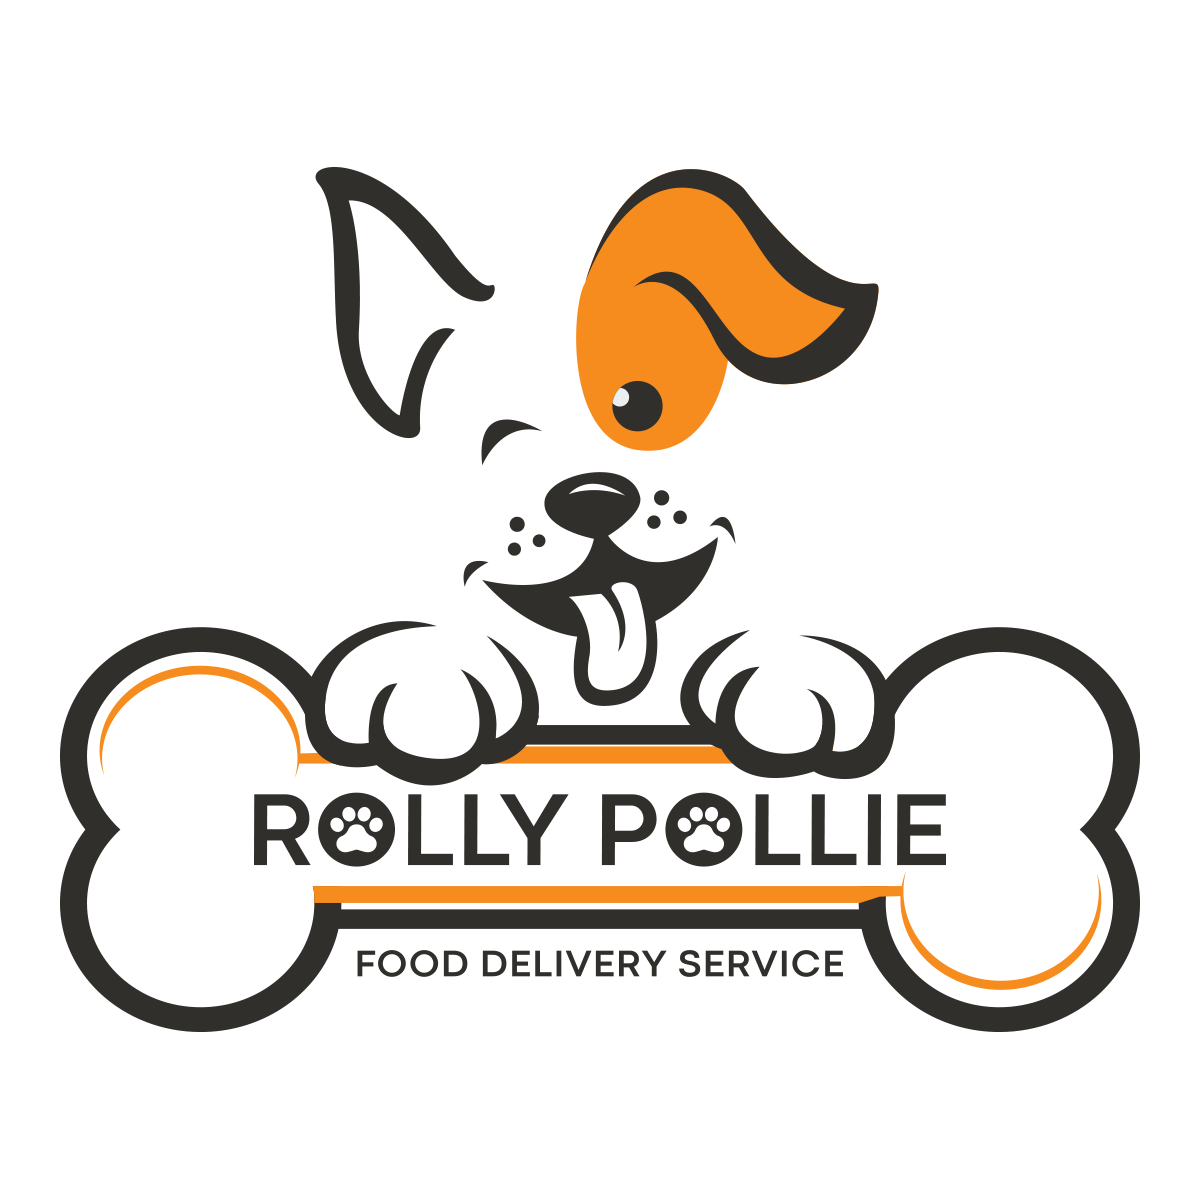 Rolly Pollie